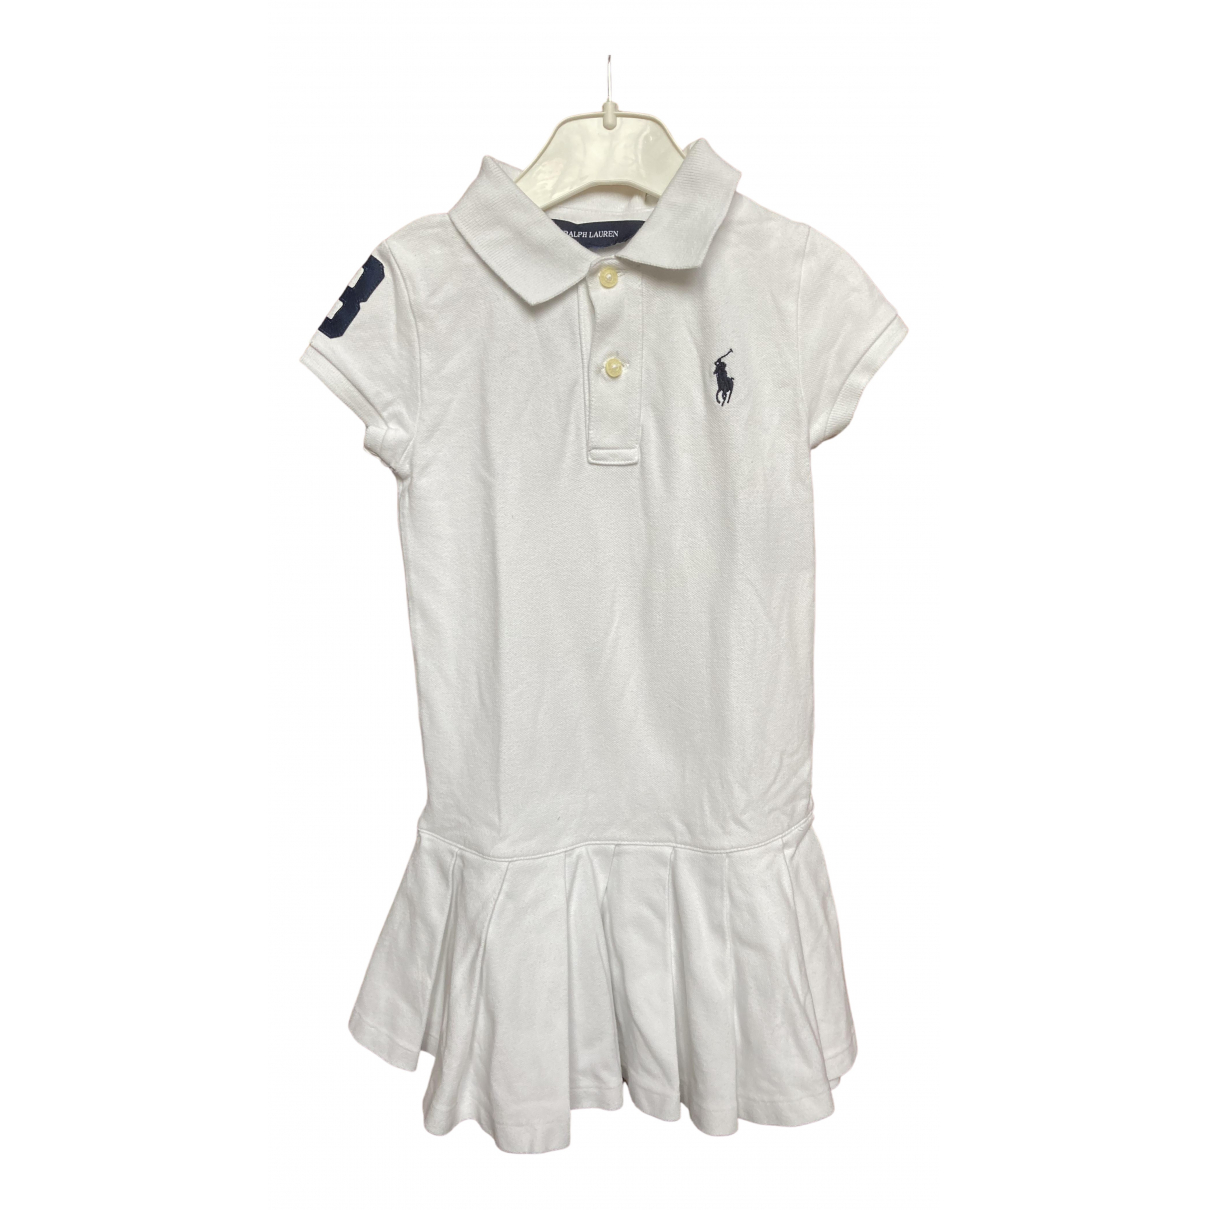 Ralph Lauren \N White Cotton dress for Kids 4 years - up to 102cm FR